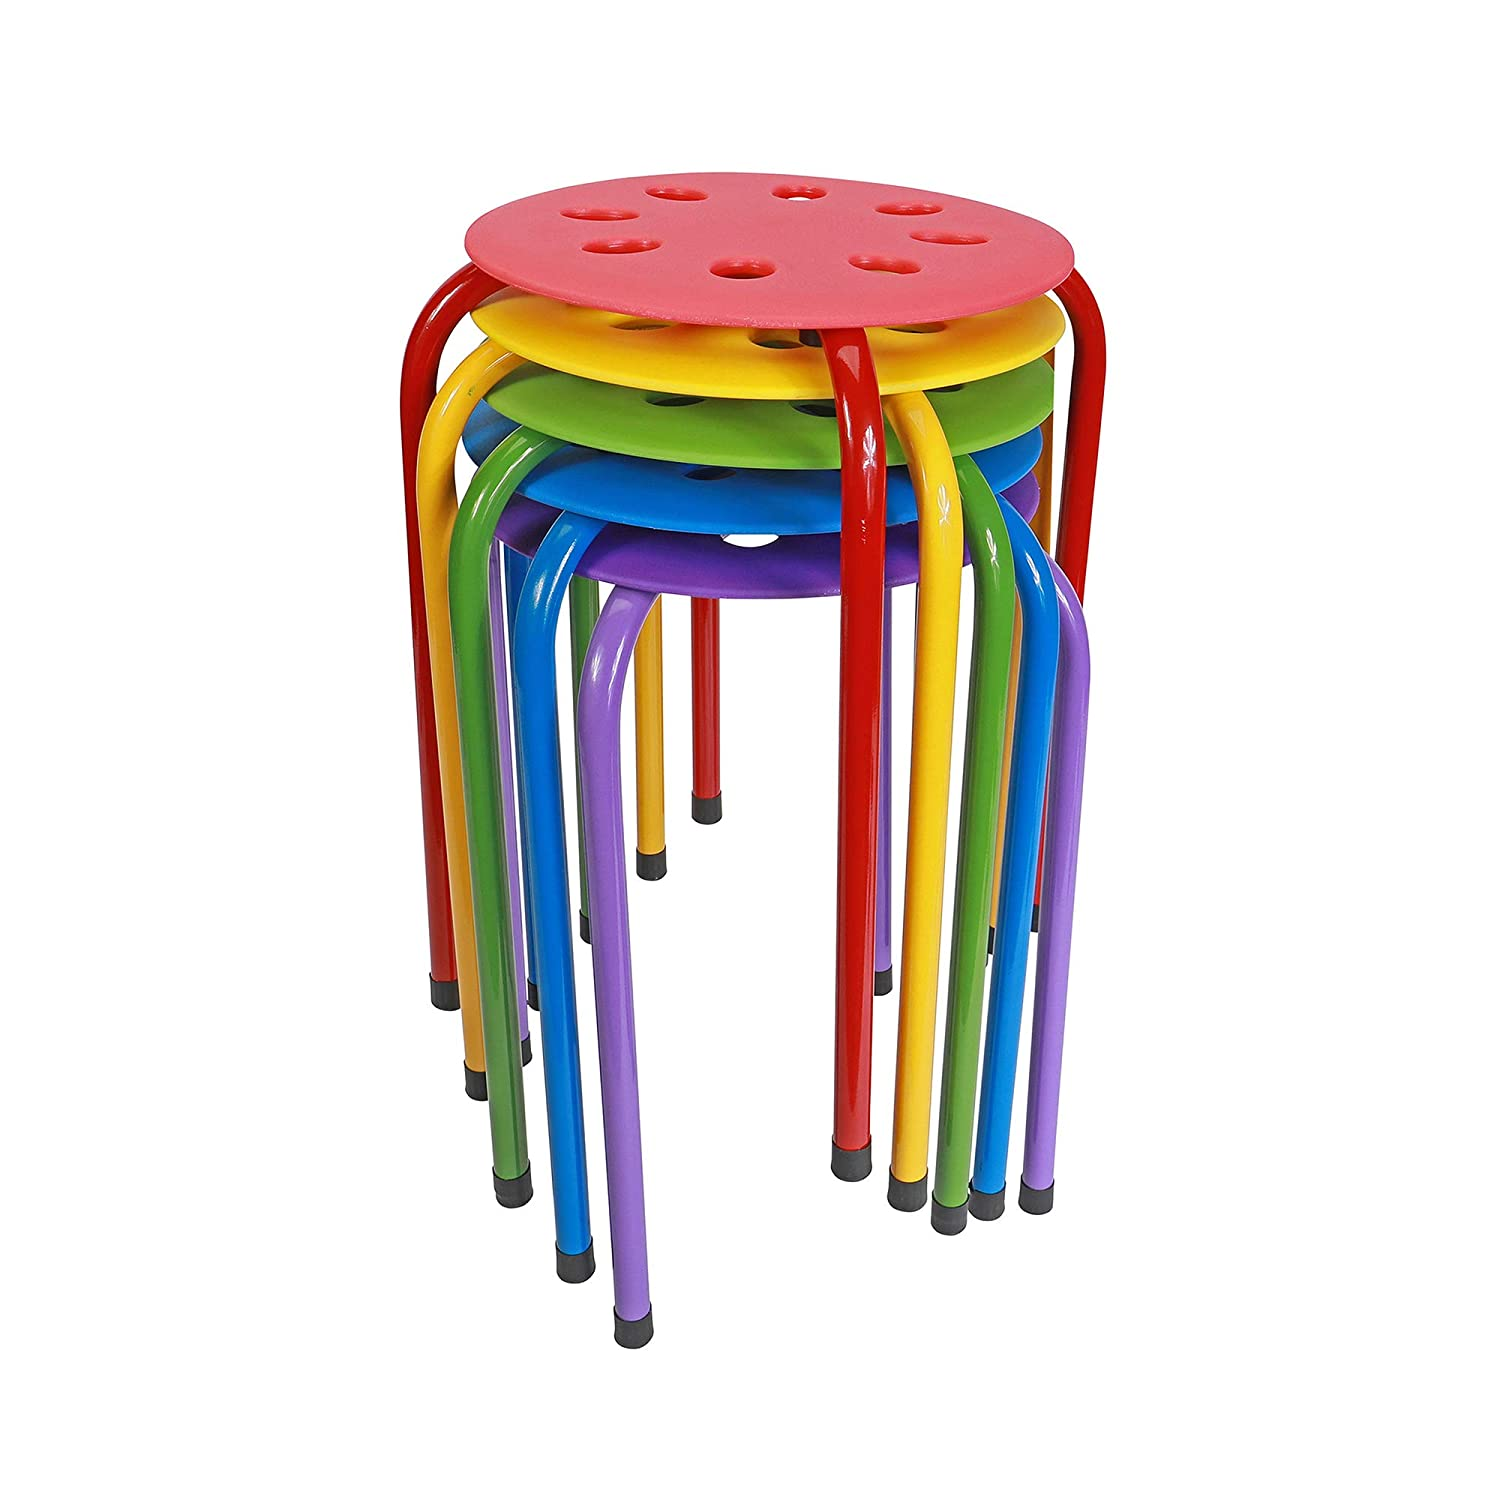 Pearington Plastic Stackable Stools, Multipurpose Stool Chairs for Schools, Offices, and Kitchen, Flexible Seating - Set of 5, Multi-Color